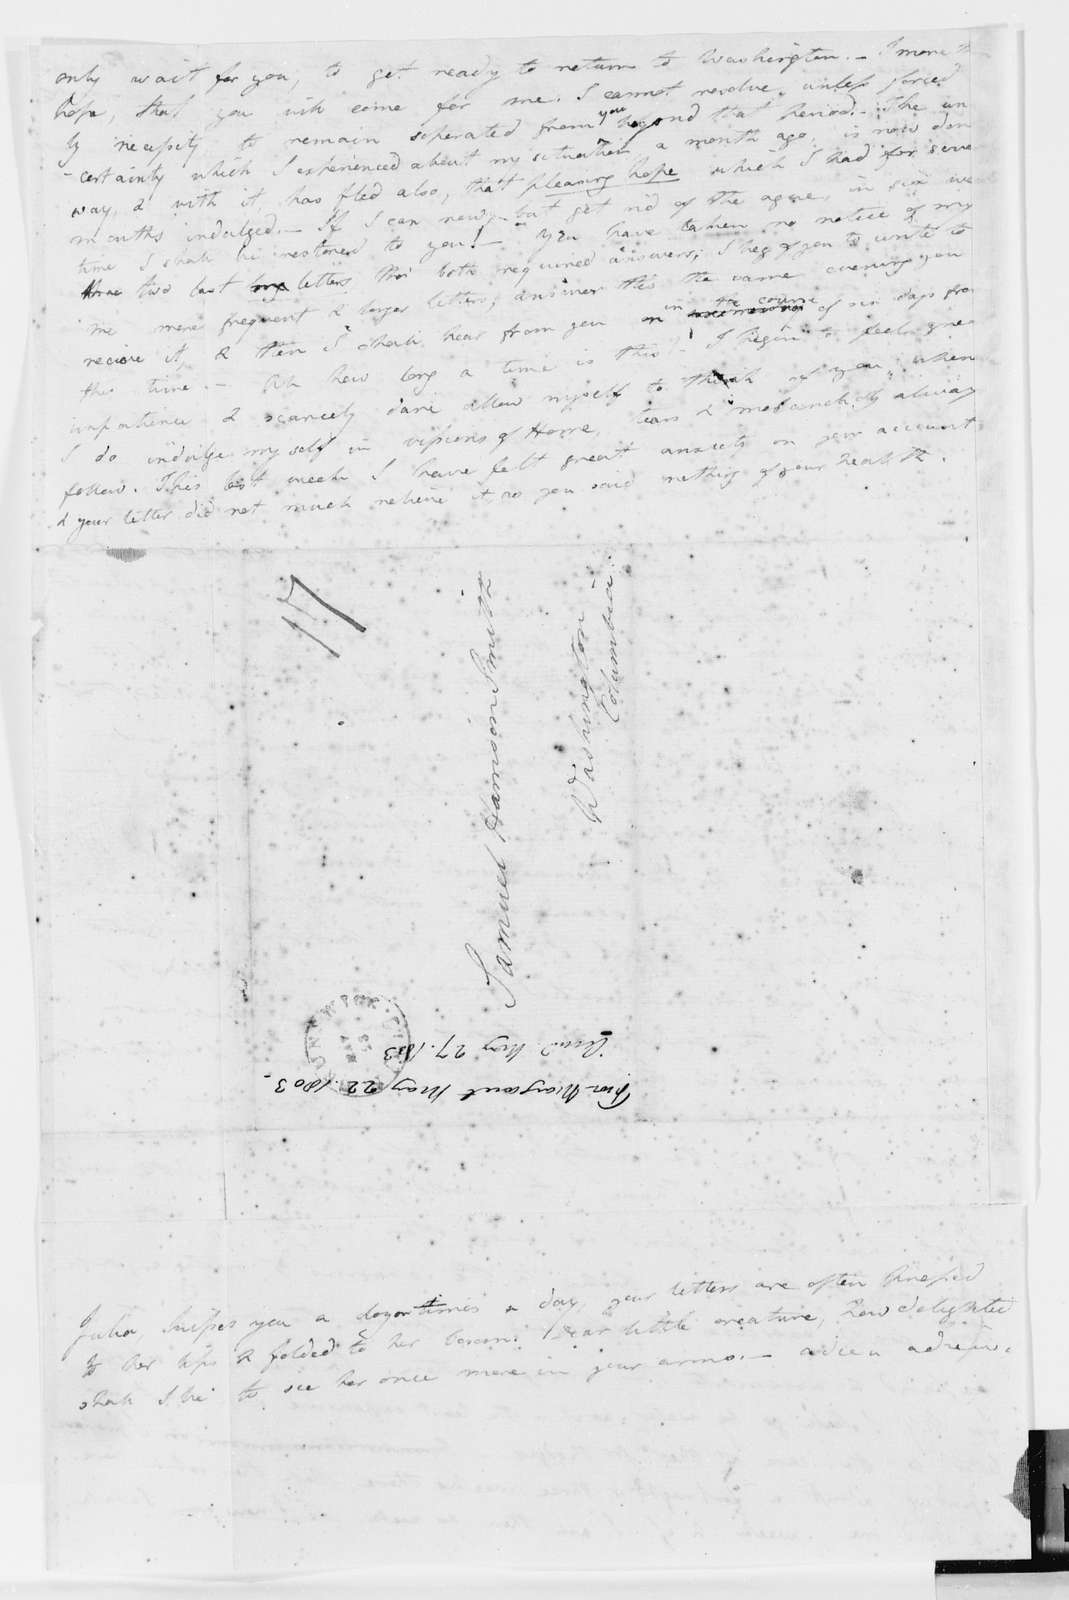 Margaret Bayard Smith Papers: Family Correspondence, 1789-1842; Smith, Samuel Harrison (husband); 1802-1803, May